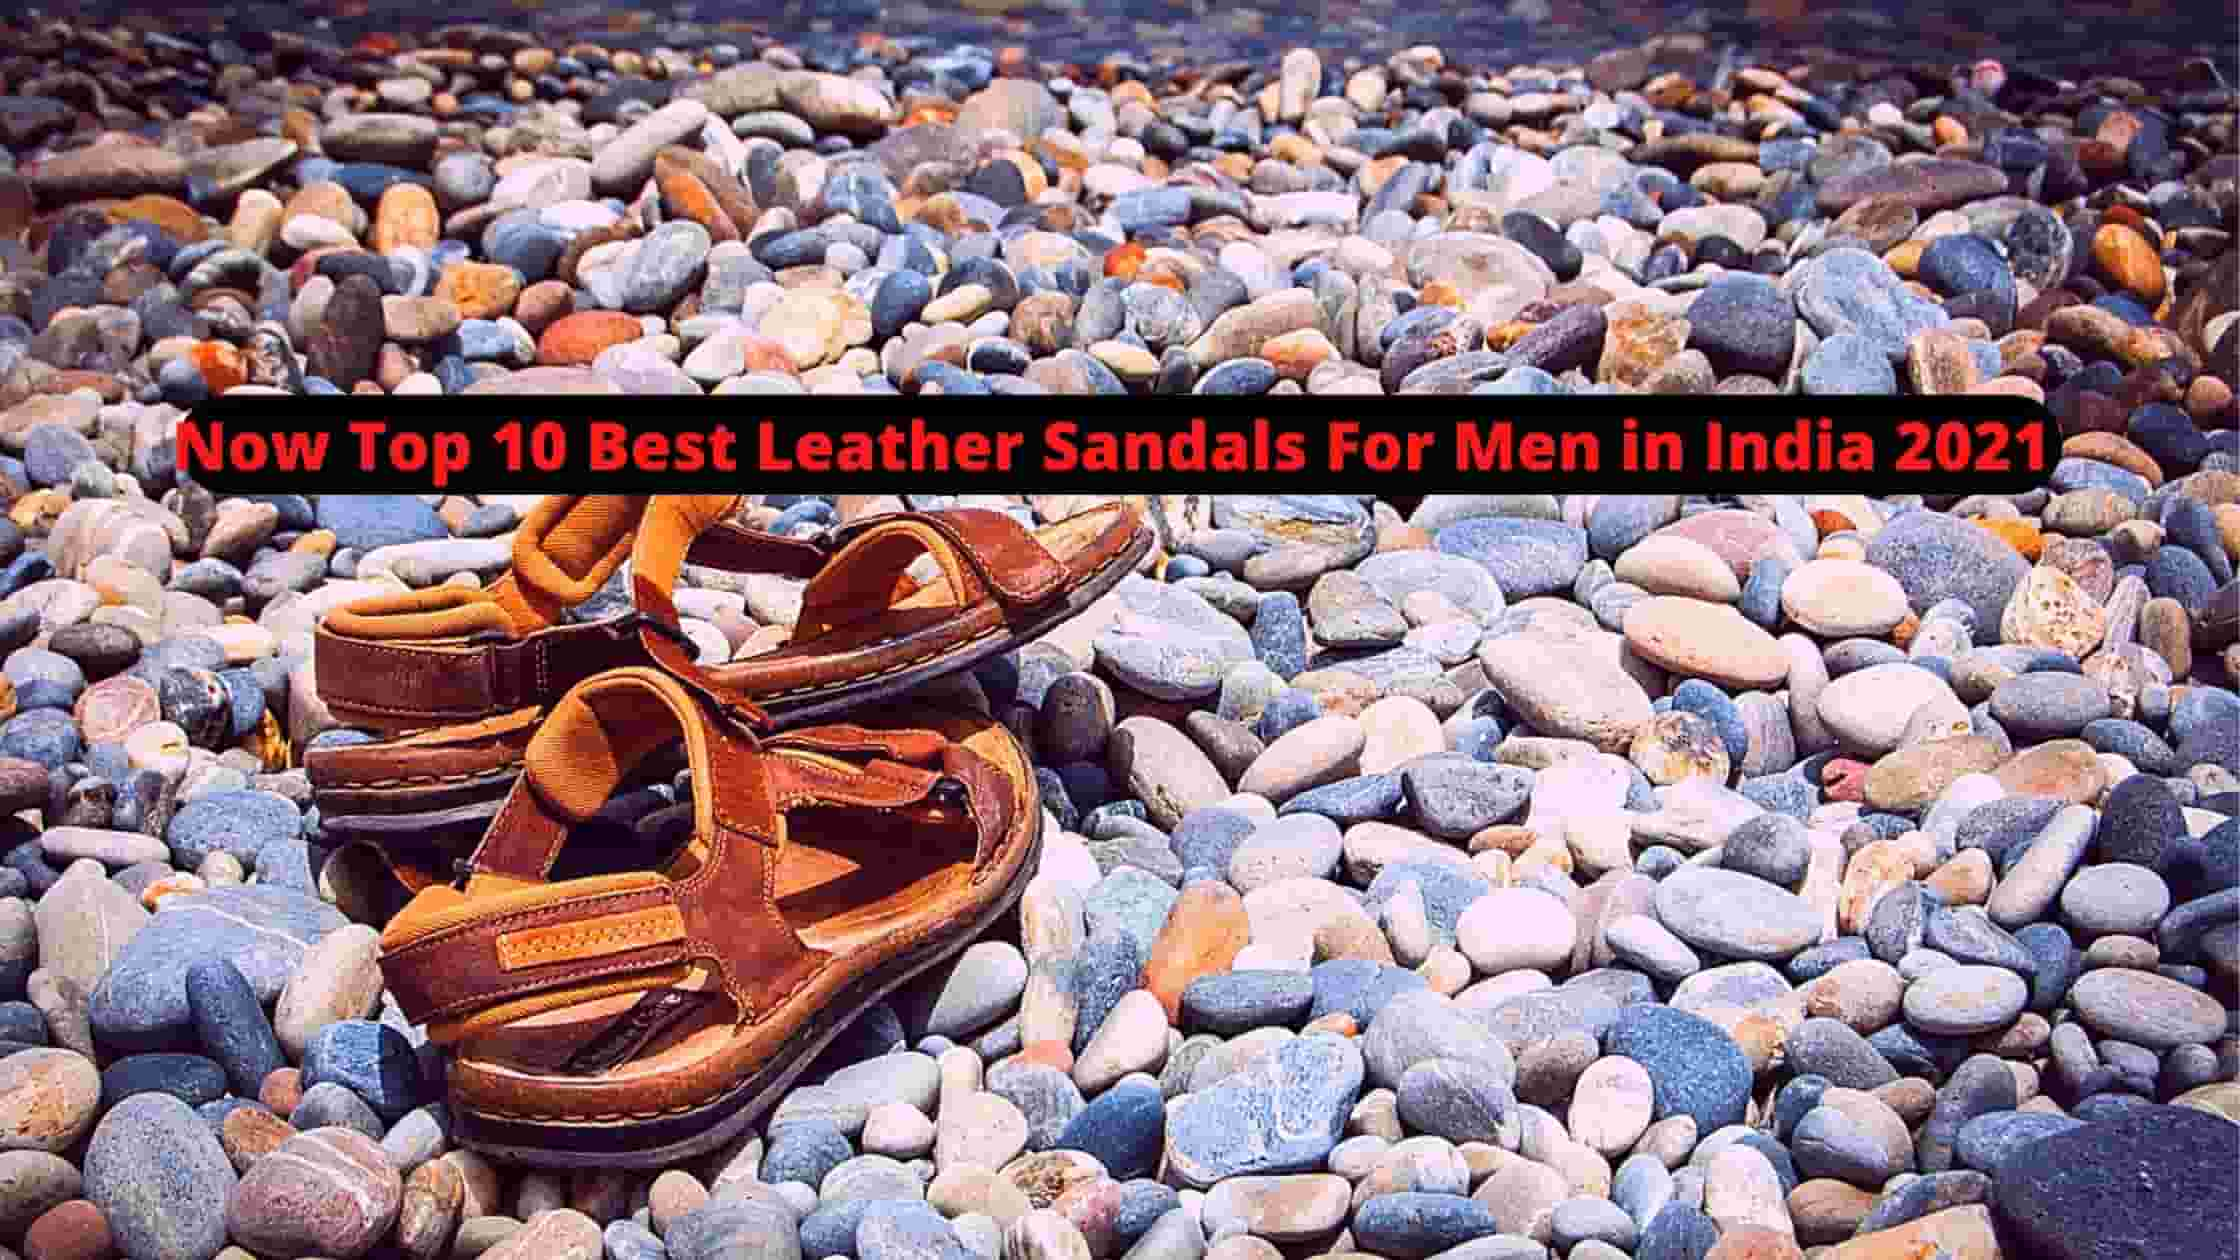 Now Top 10 Best Leather Sandals For Men in India 2021 [Bengali]